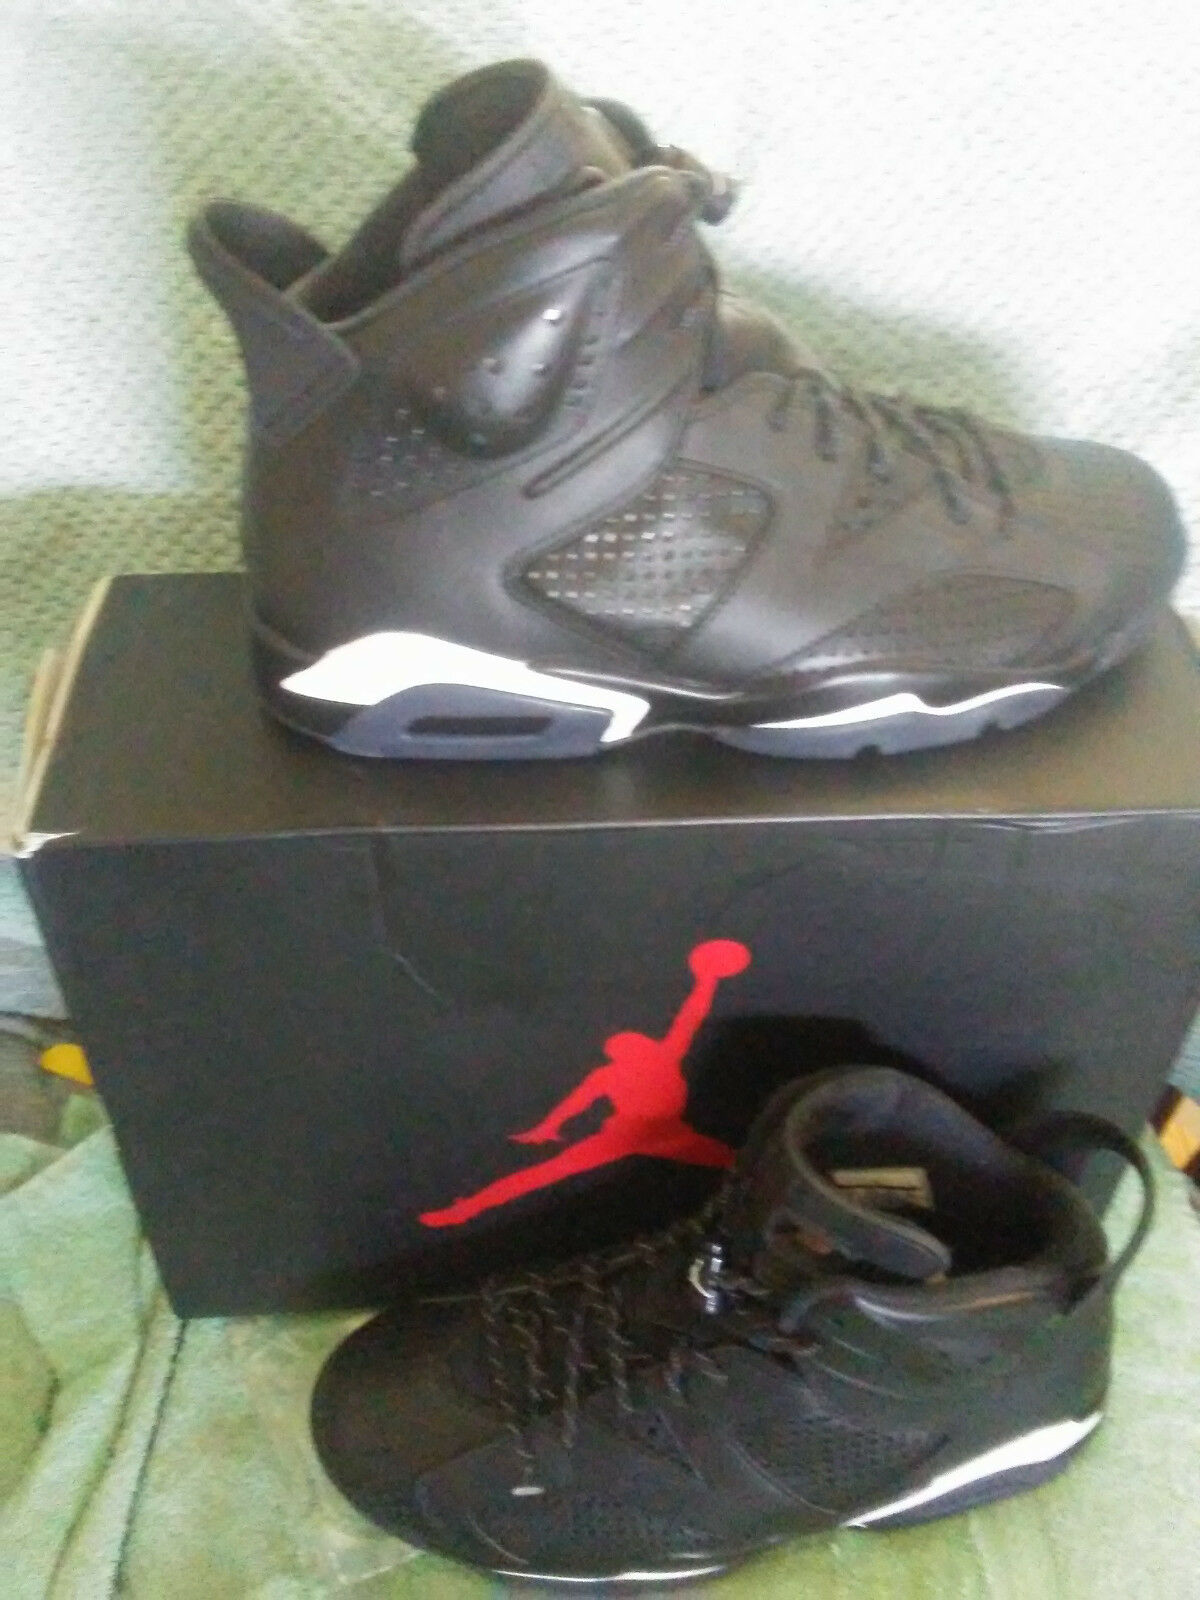 Mens Nike Air Retro 6  size 8.5  Black/White.  New in Box